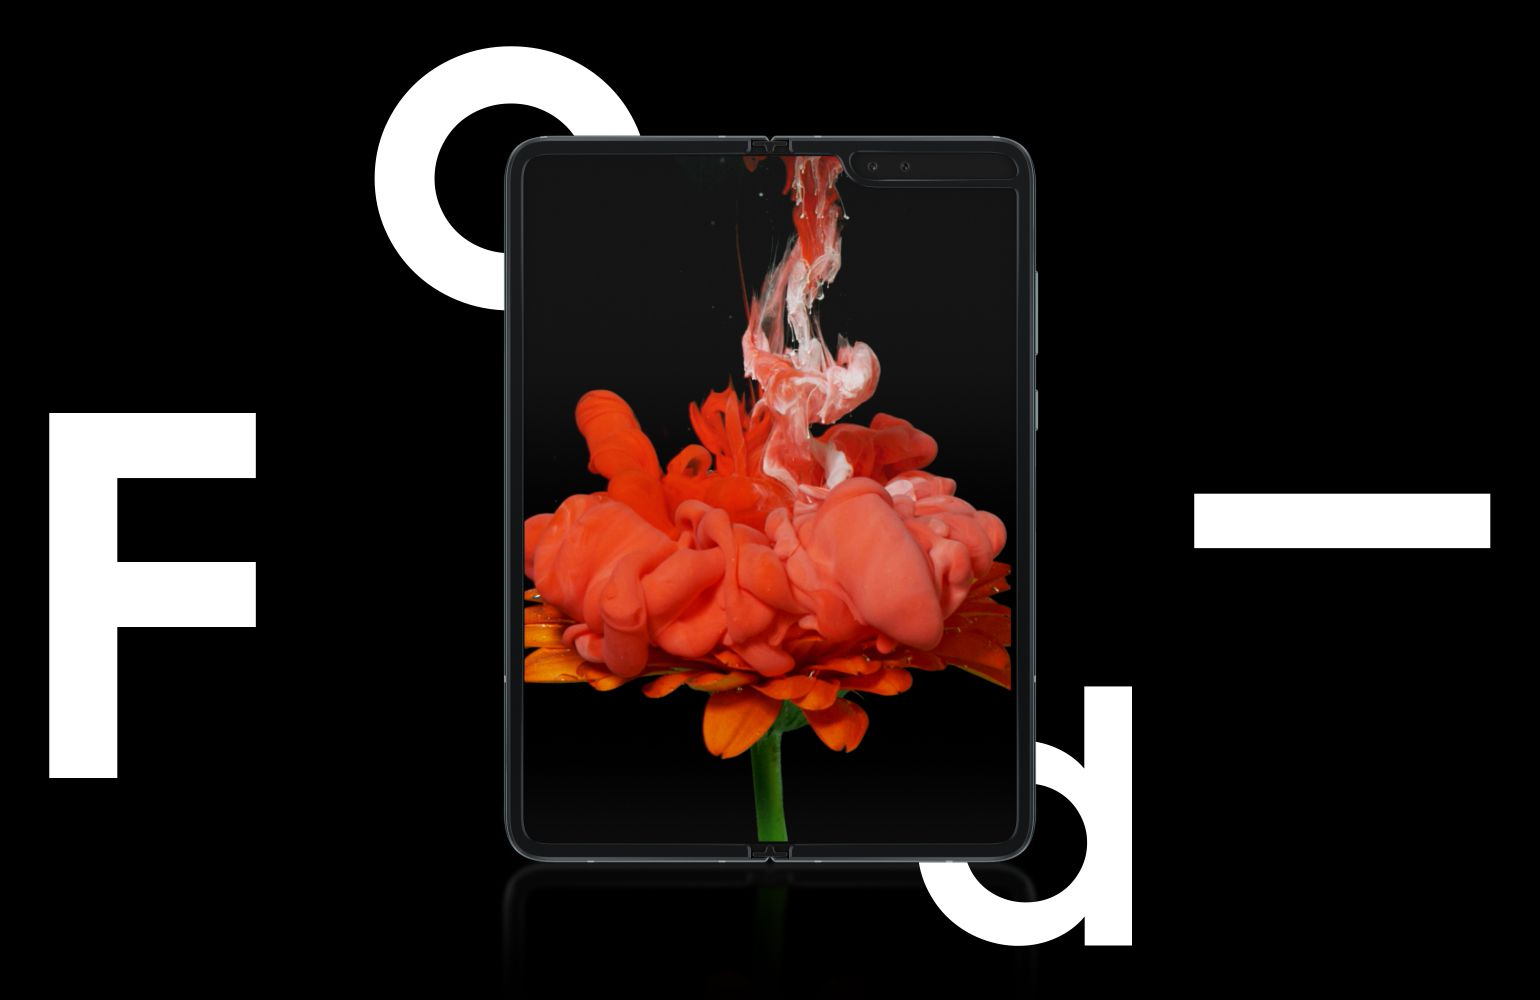 Galaxy Fold, unfolded and seen from the front with a pink and purple floral graphic on-screen